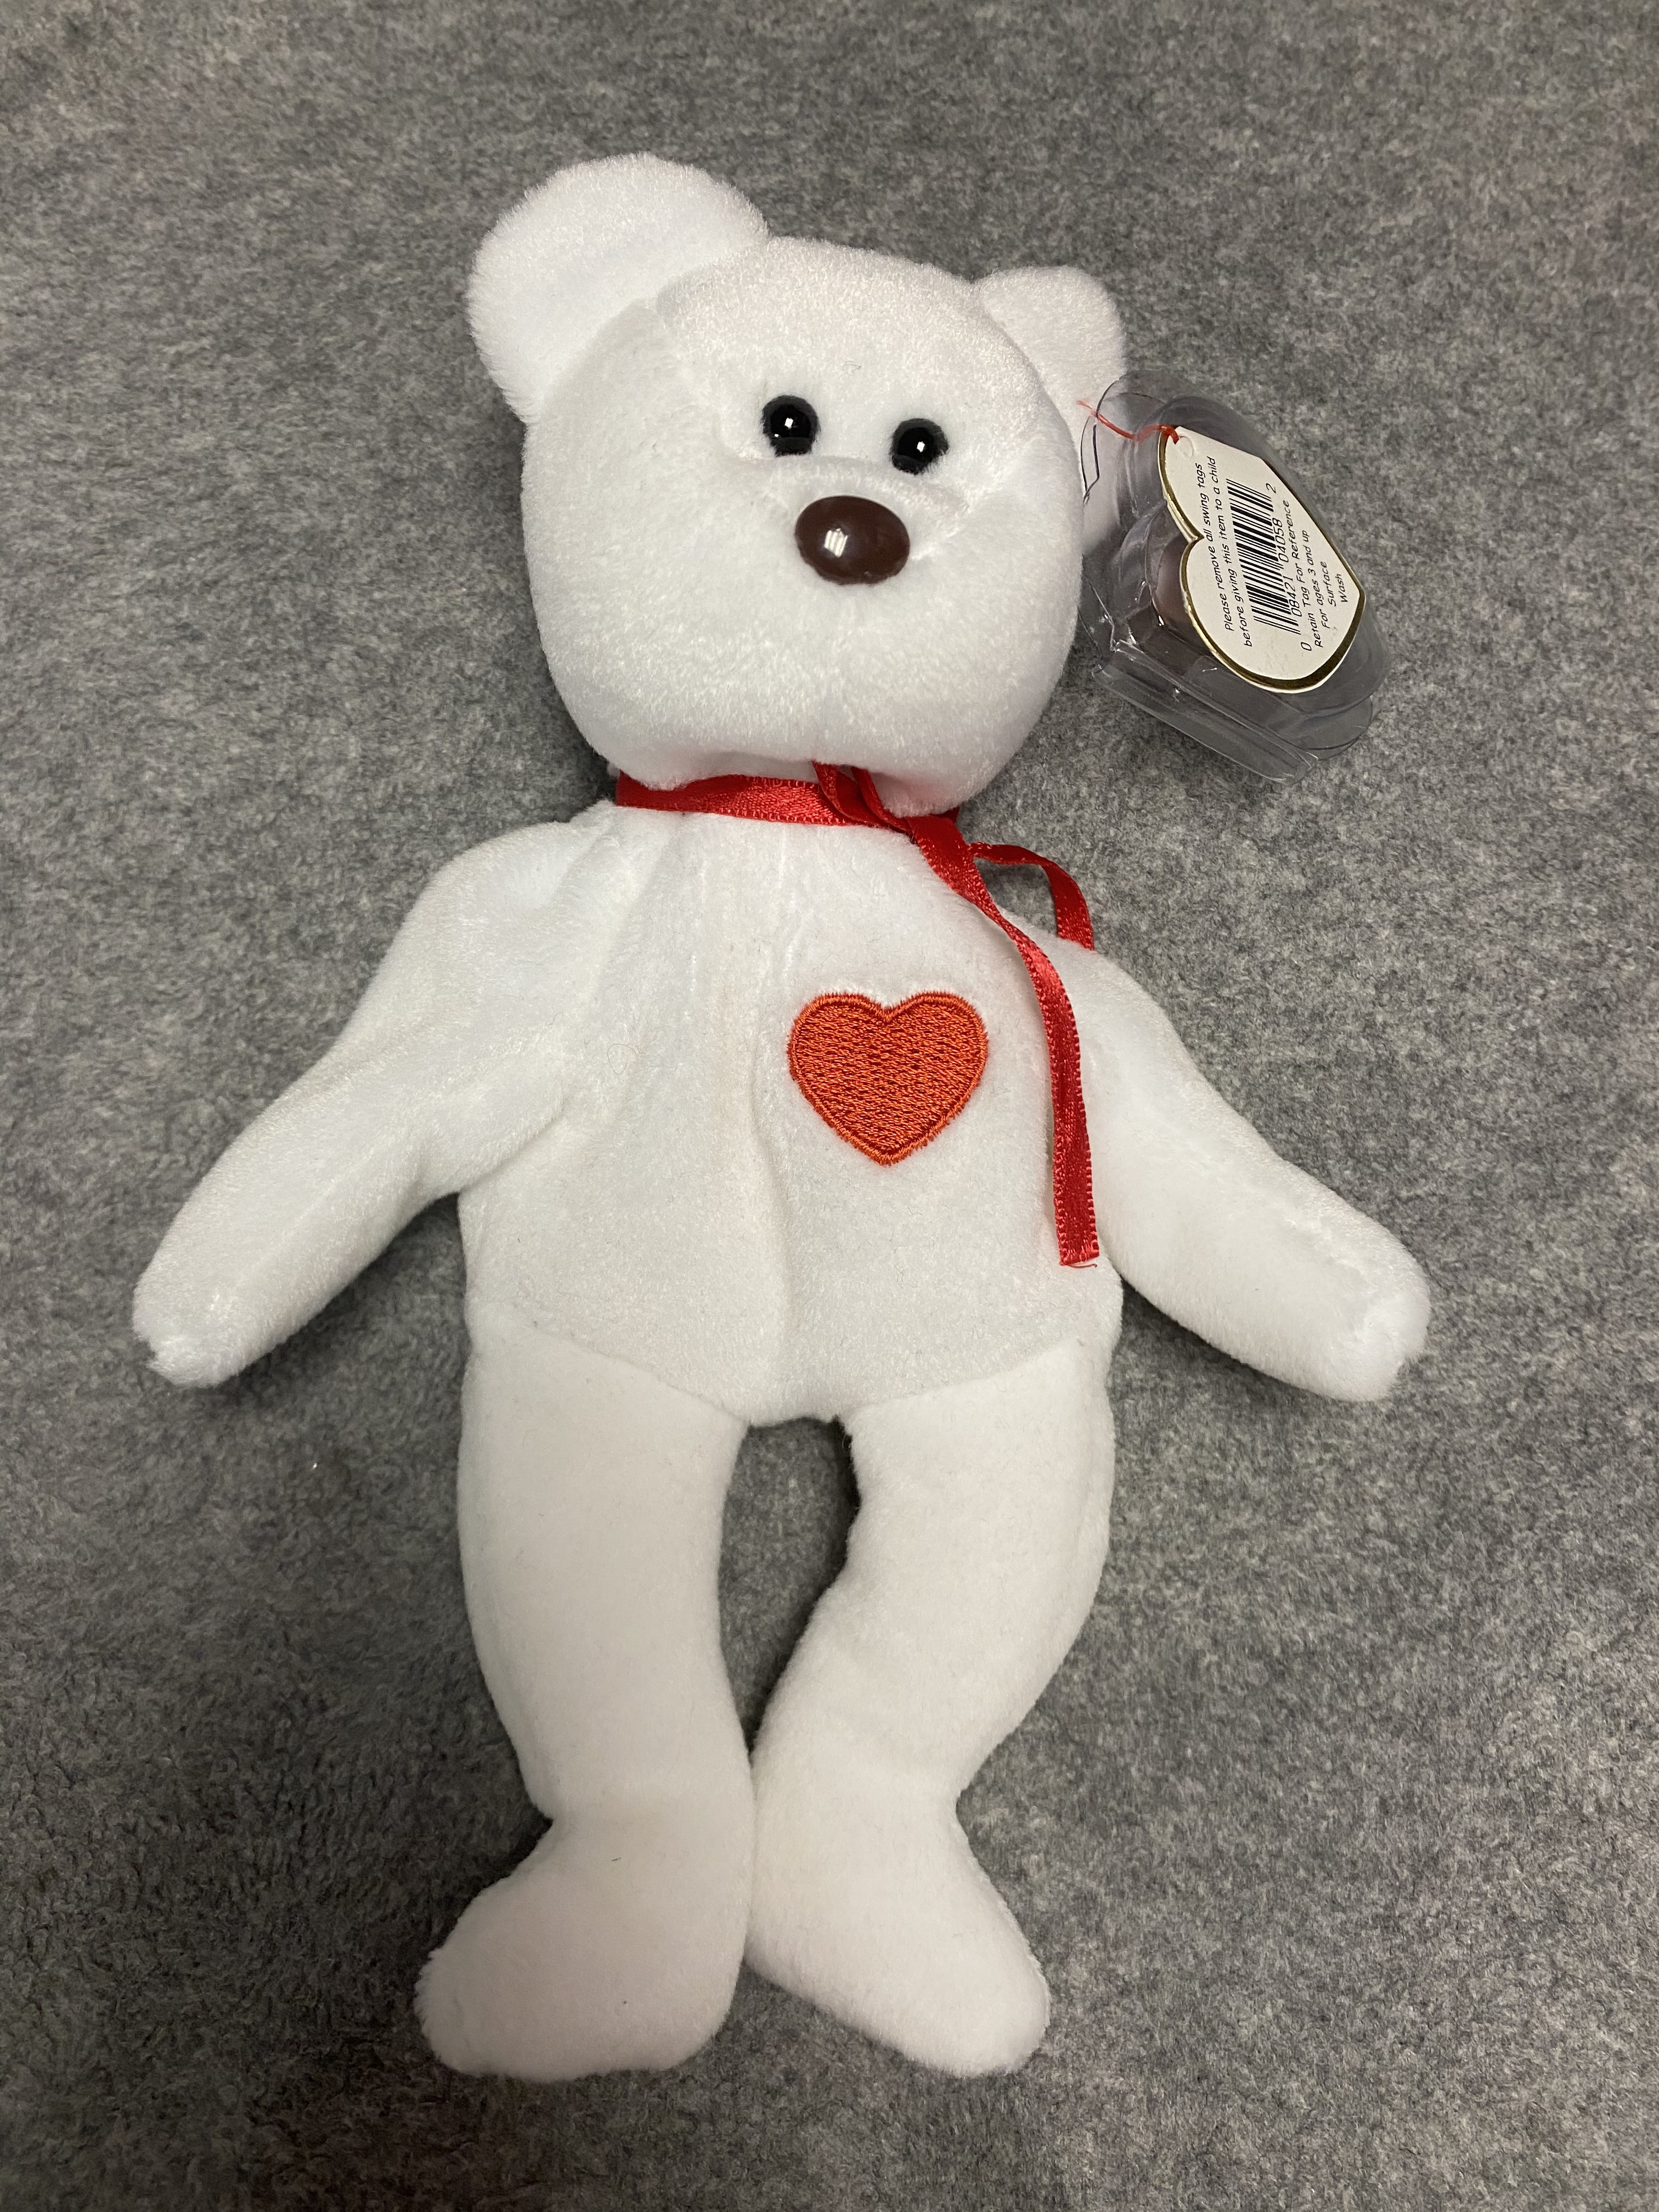 White Bear Beanie Babies with Red Heart